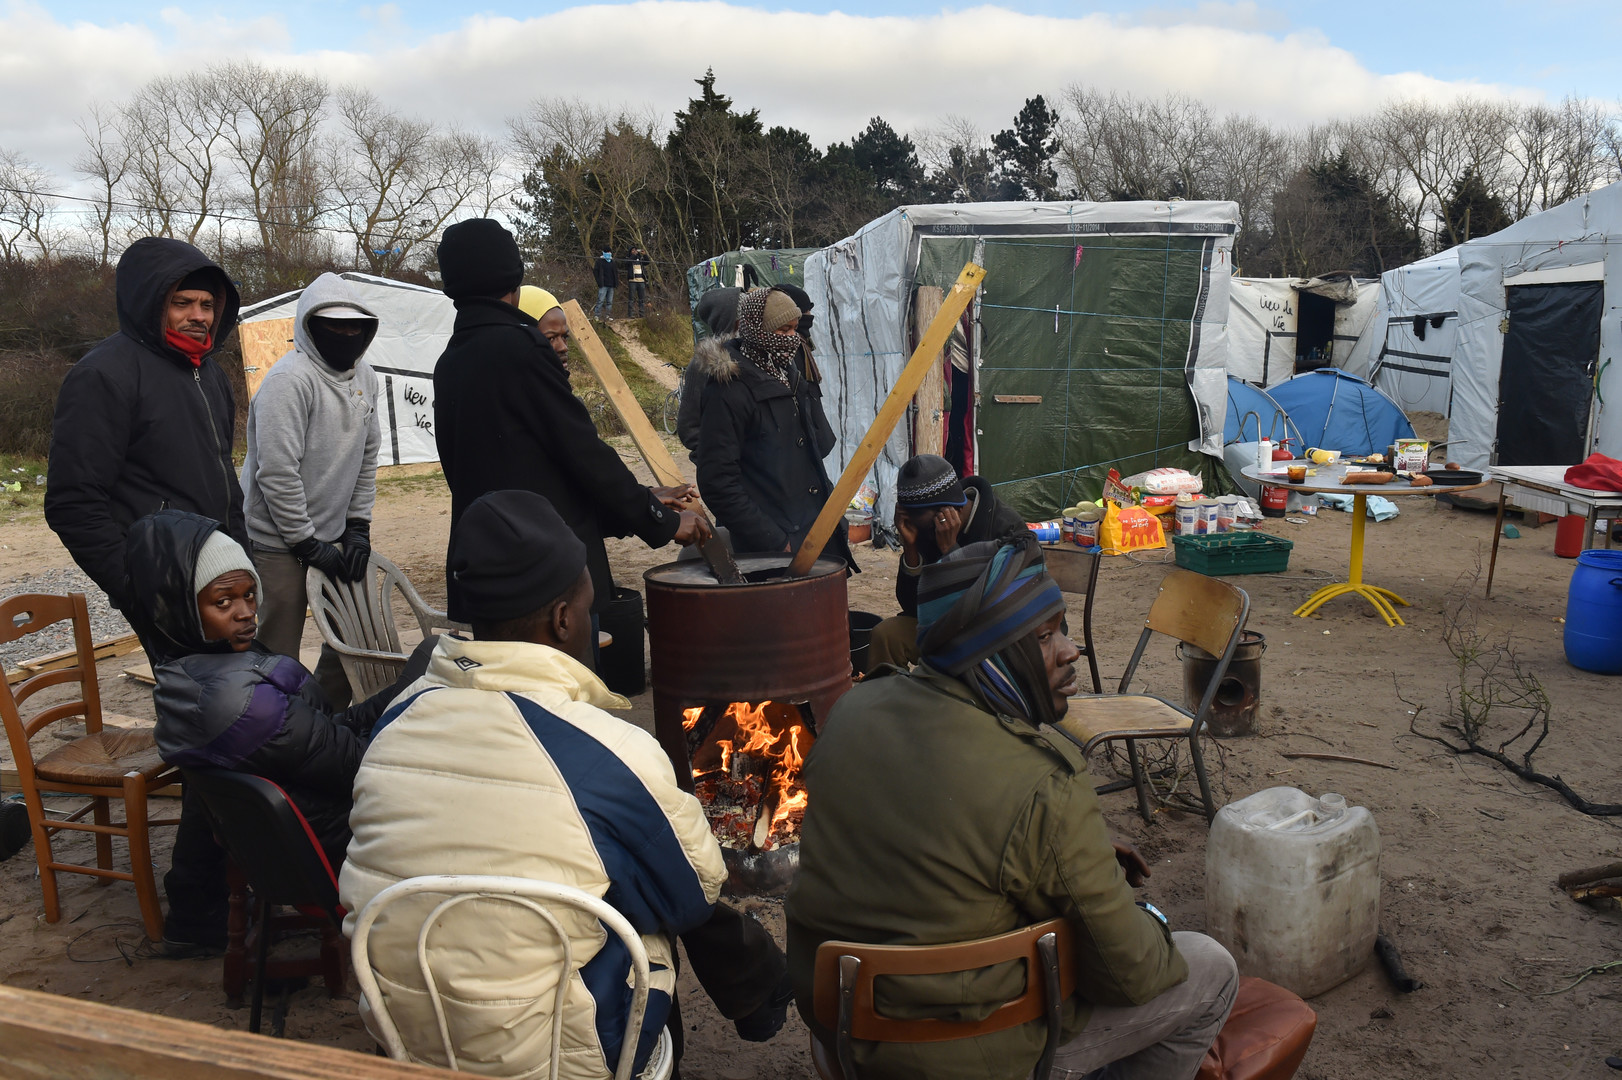 Evacuation de Calais : violents affrontements, les No Borders en ligne de mire (VIDEOS, PHOTOS)